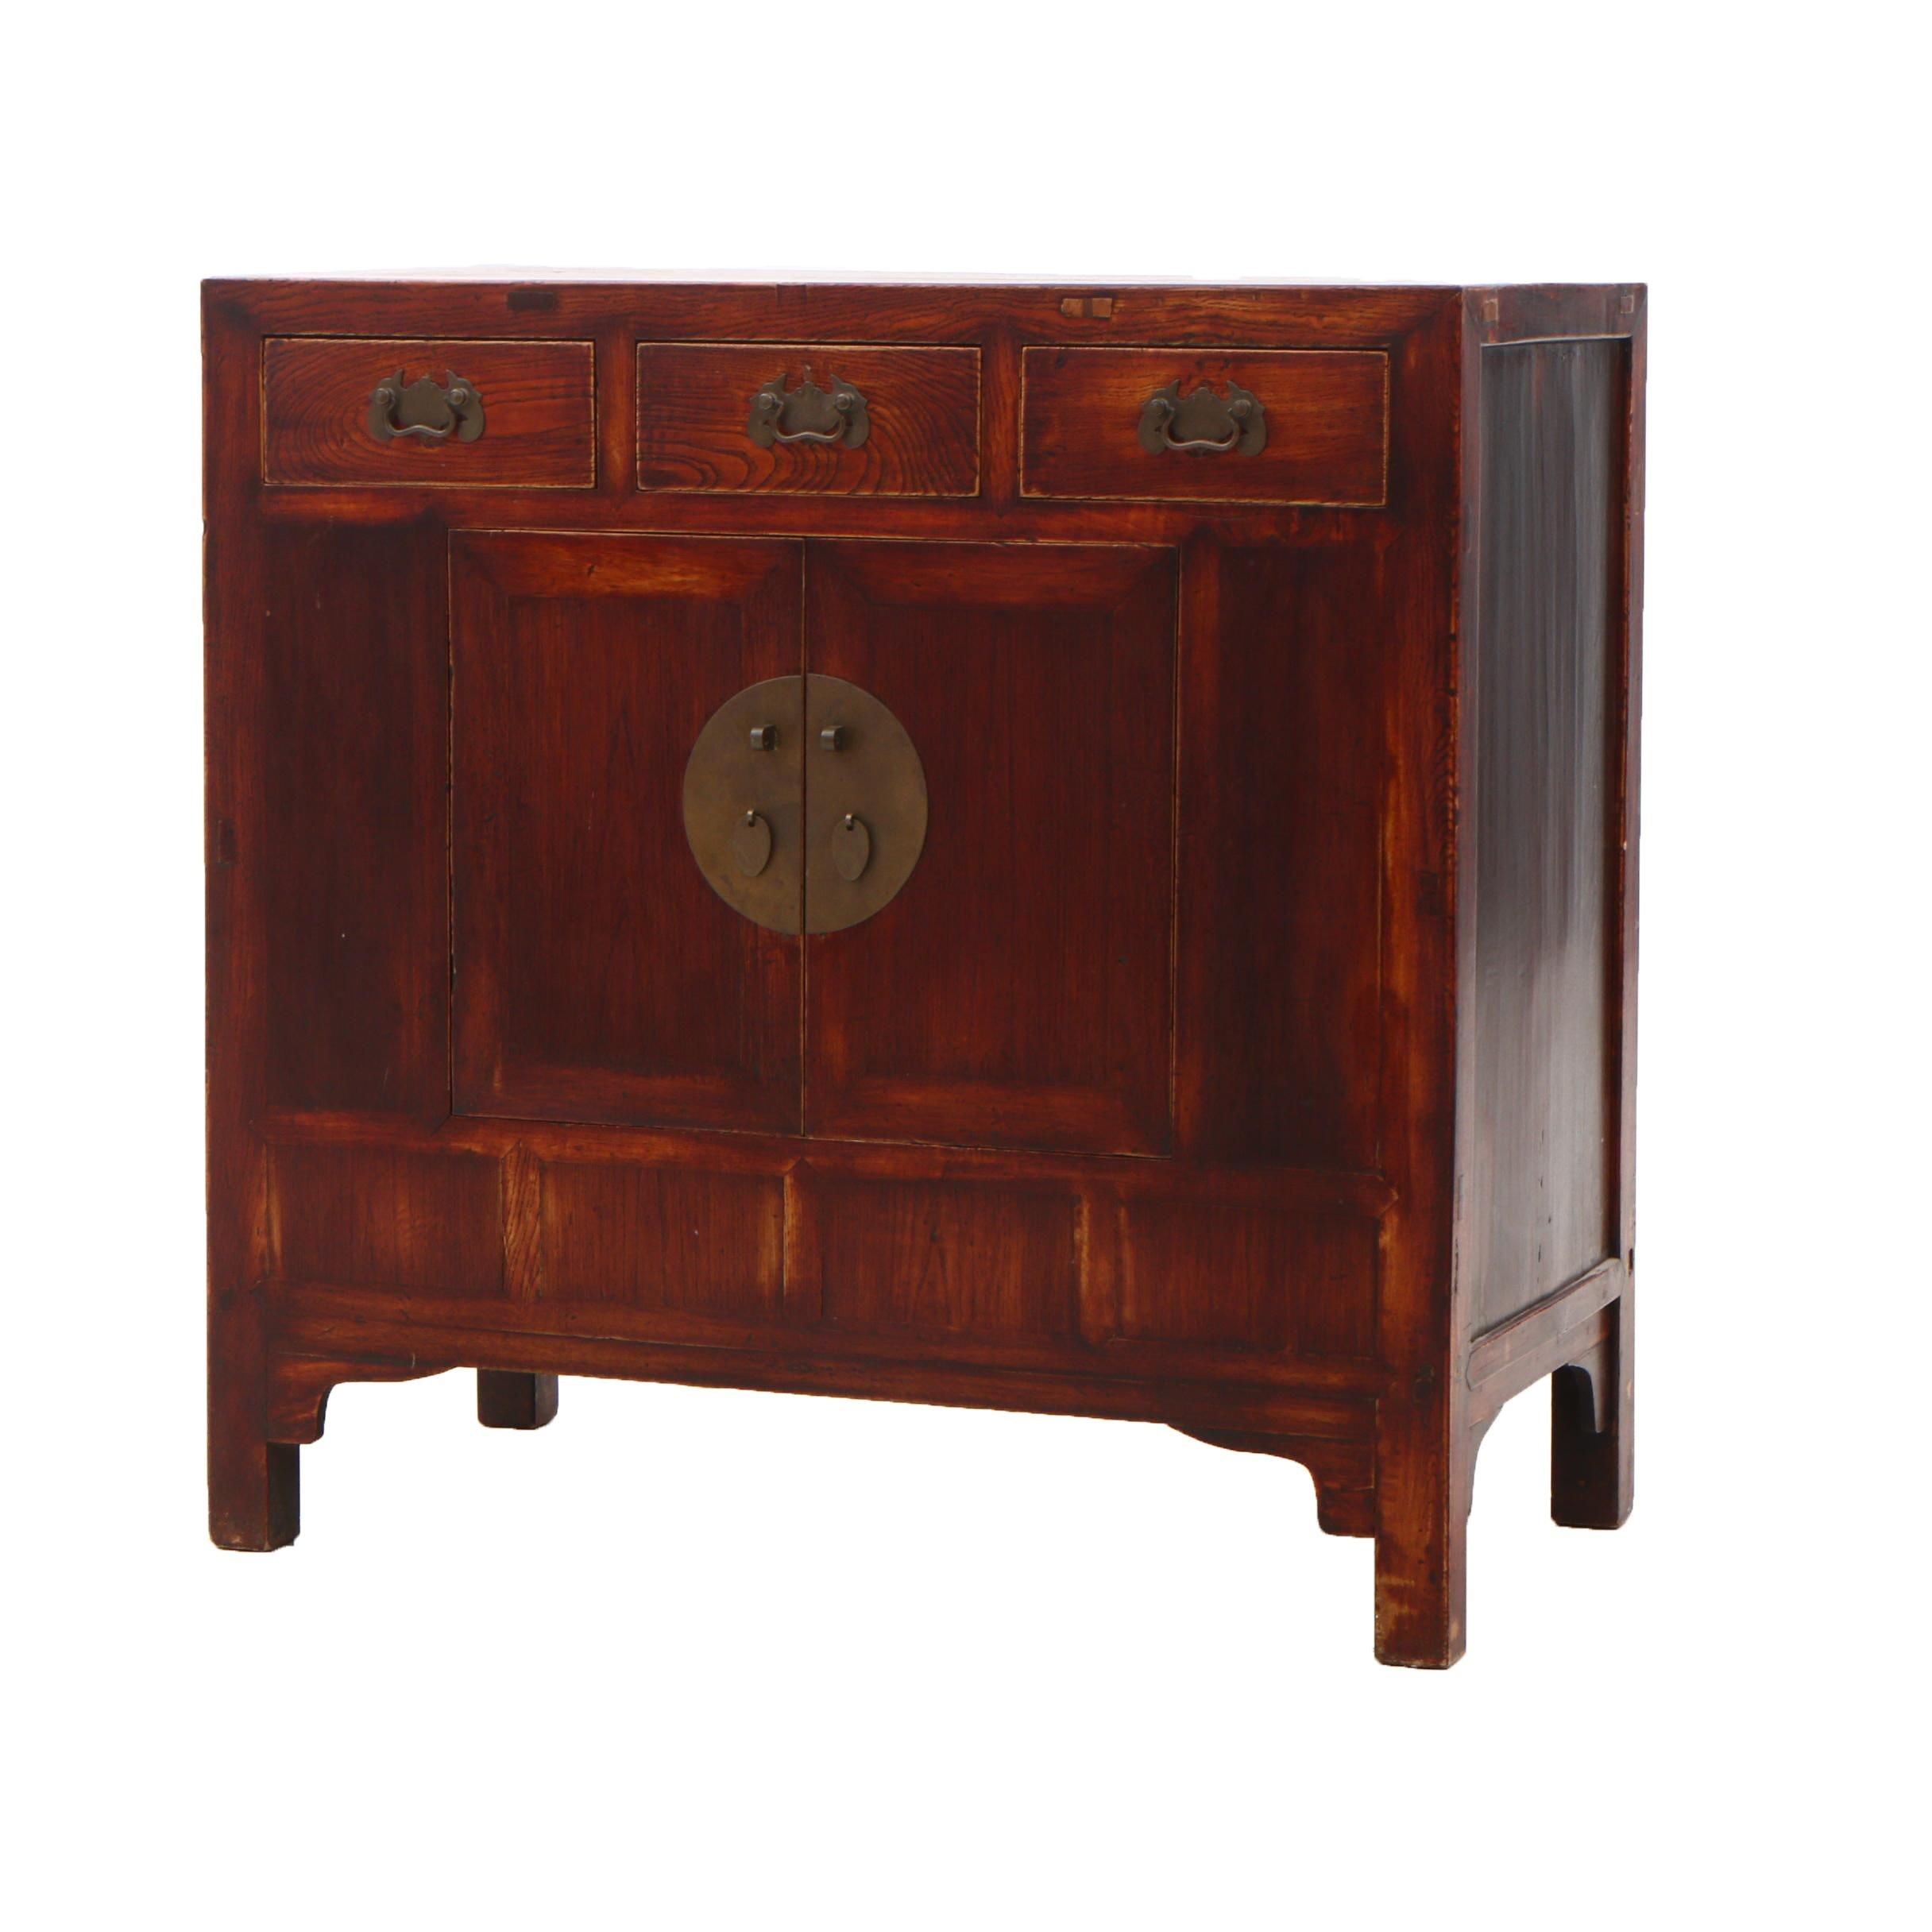 Chinese Elm Cabinet in Red Wash Finish, Contemporary